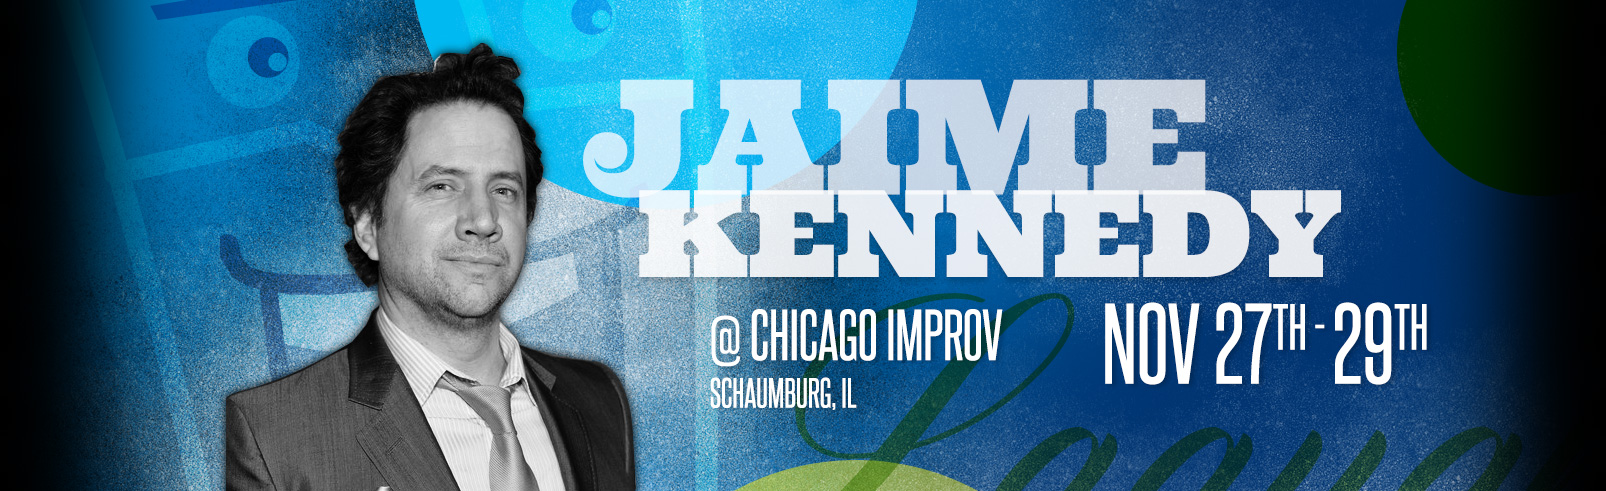 Jamie Kennedy @ Chicago Improv